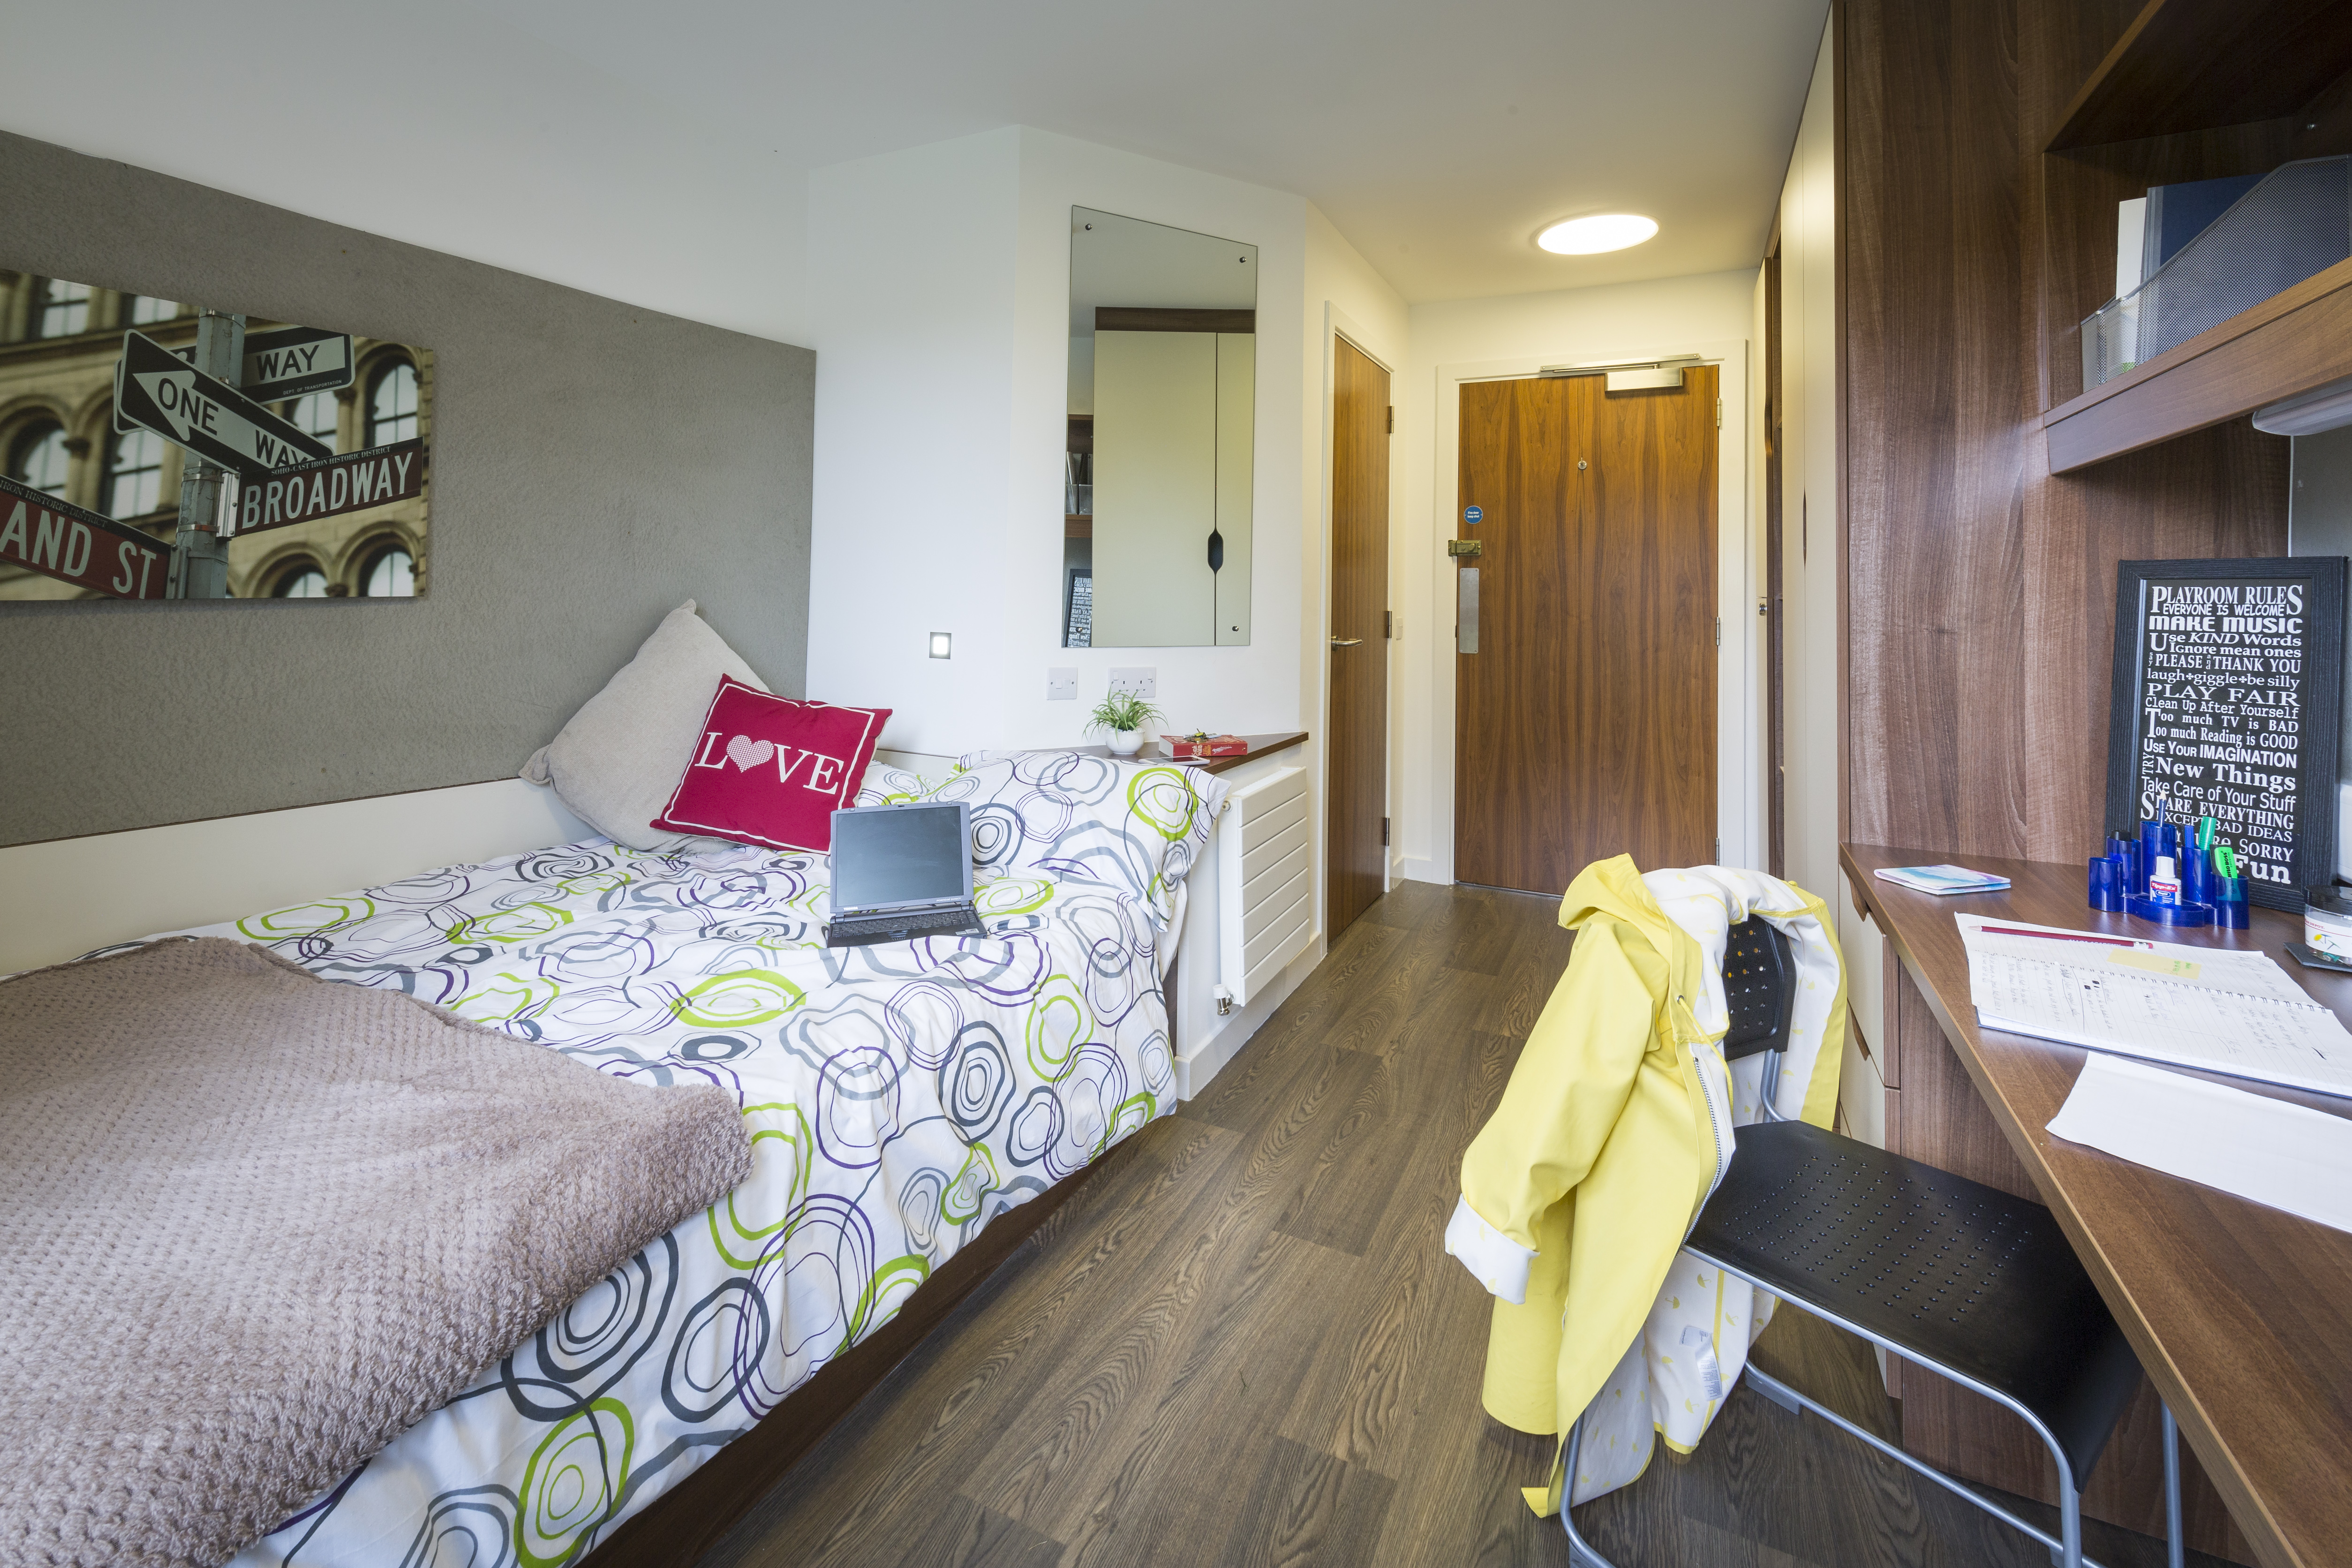 Bedroom at Beech Court student accommodation at University of Stirling